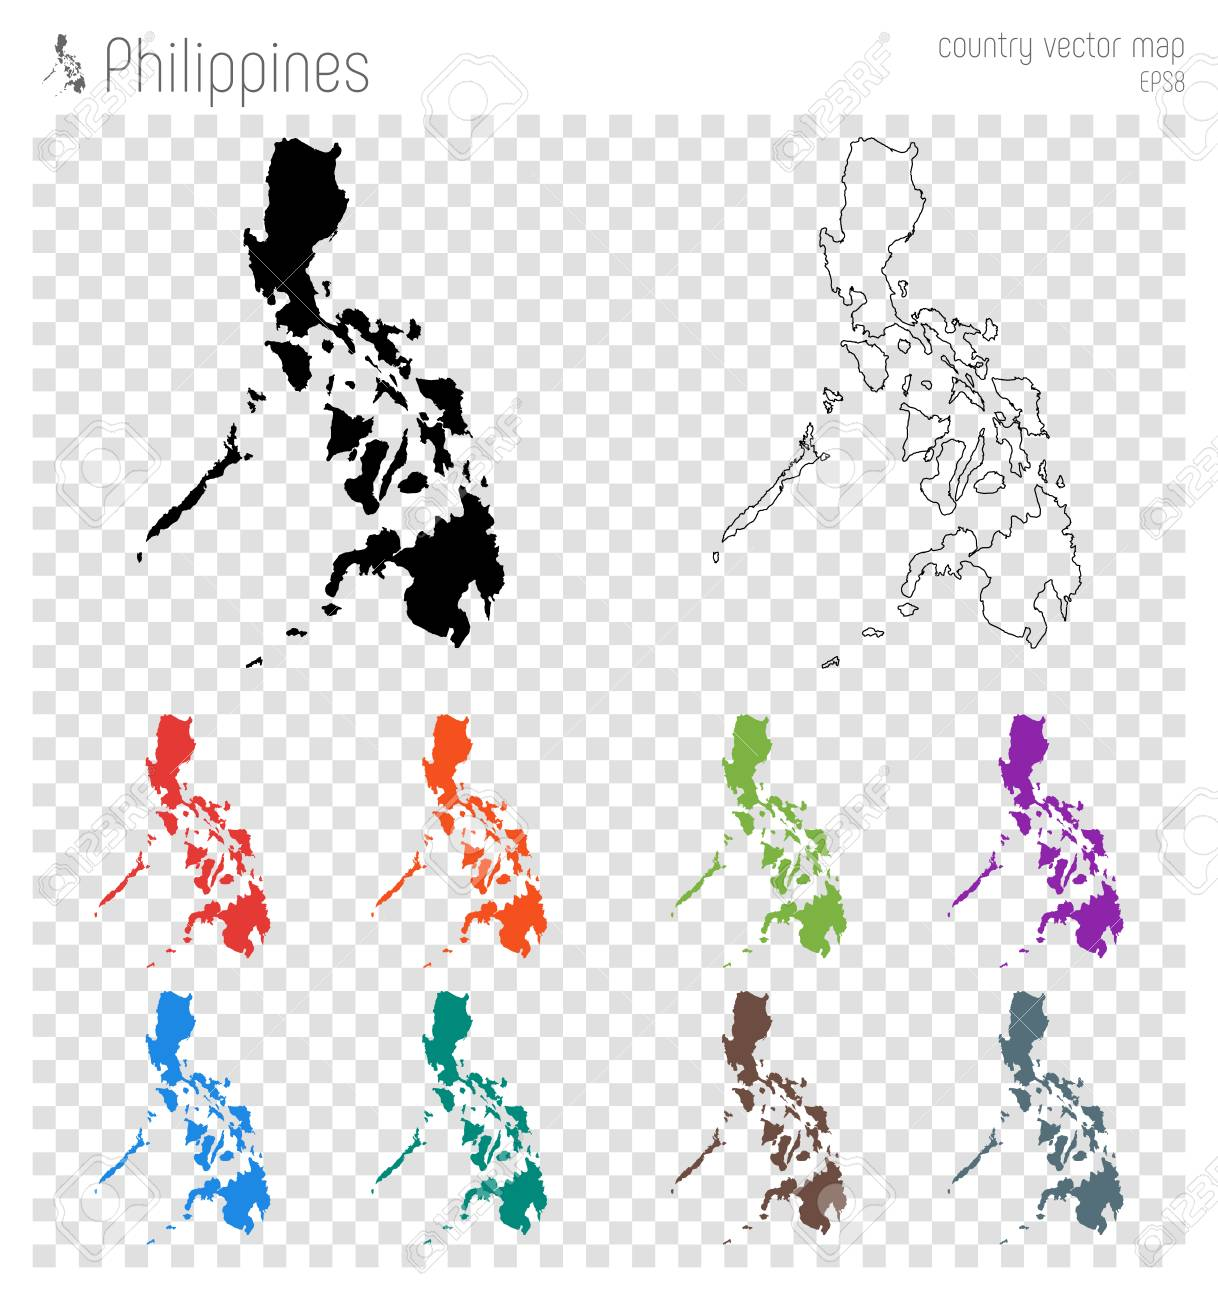 Philippines High Detailed Map Country Silhouette Icon Isolated